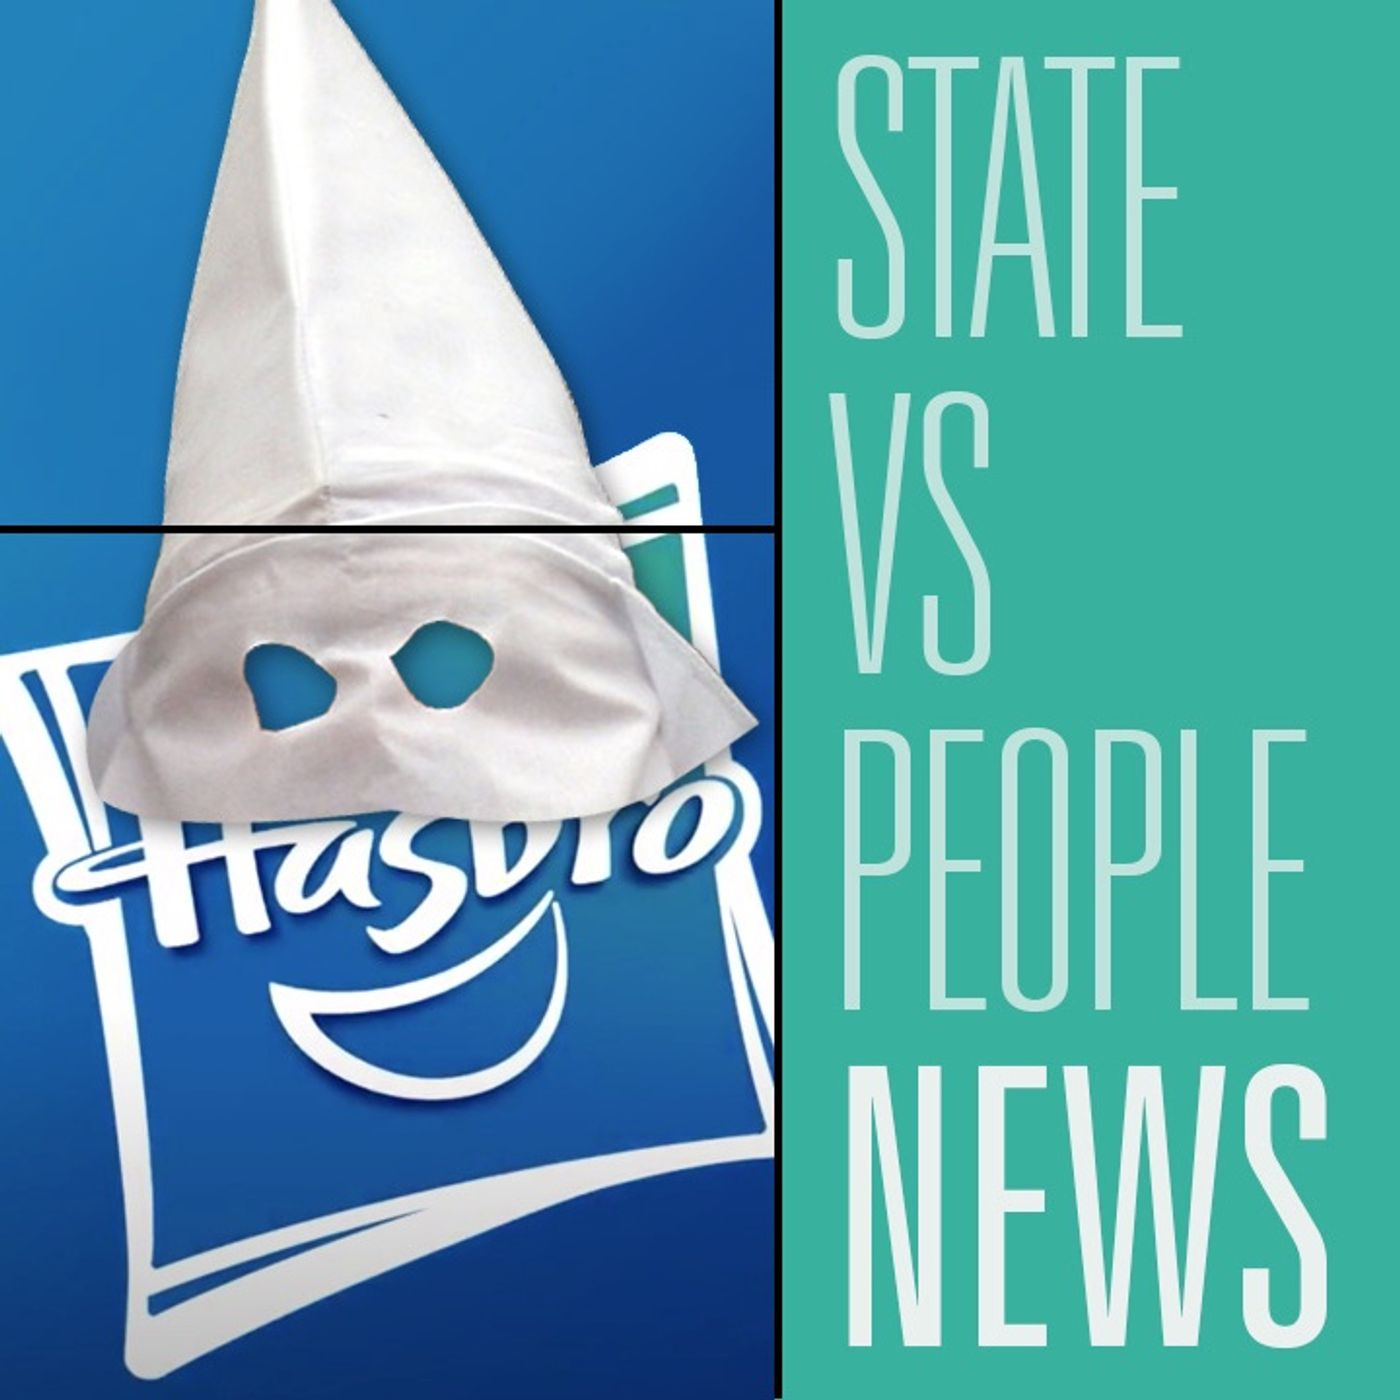 Facebook, Social Media, Hasbro and the Government VS Free Peoples   HBR News 316